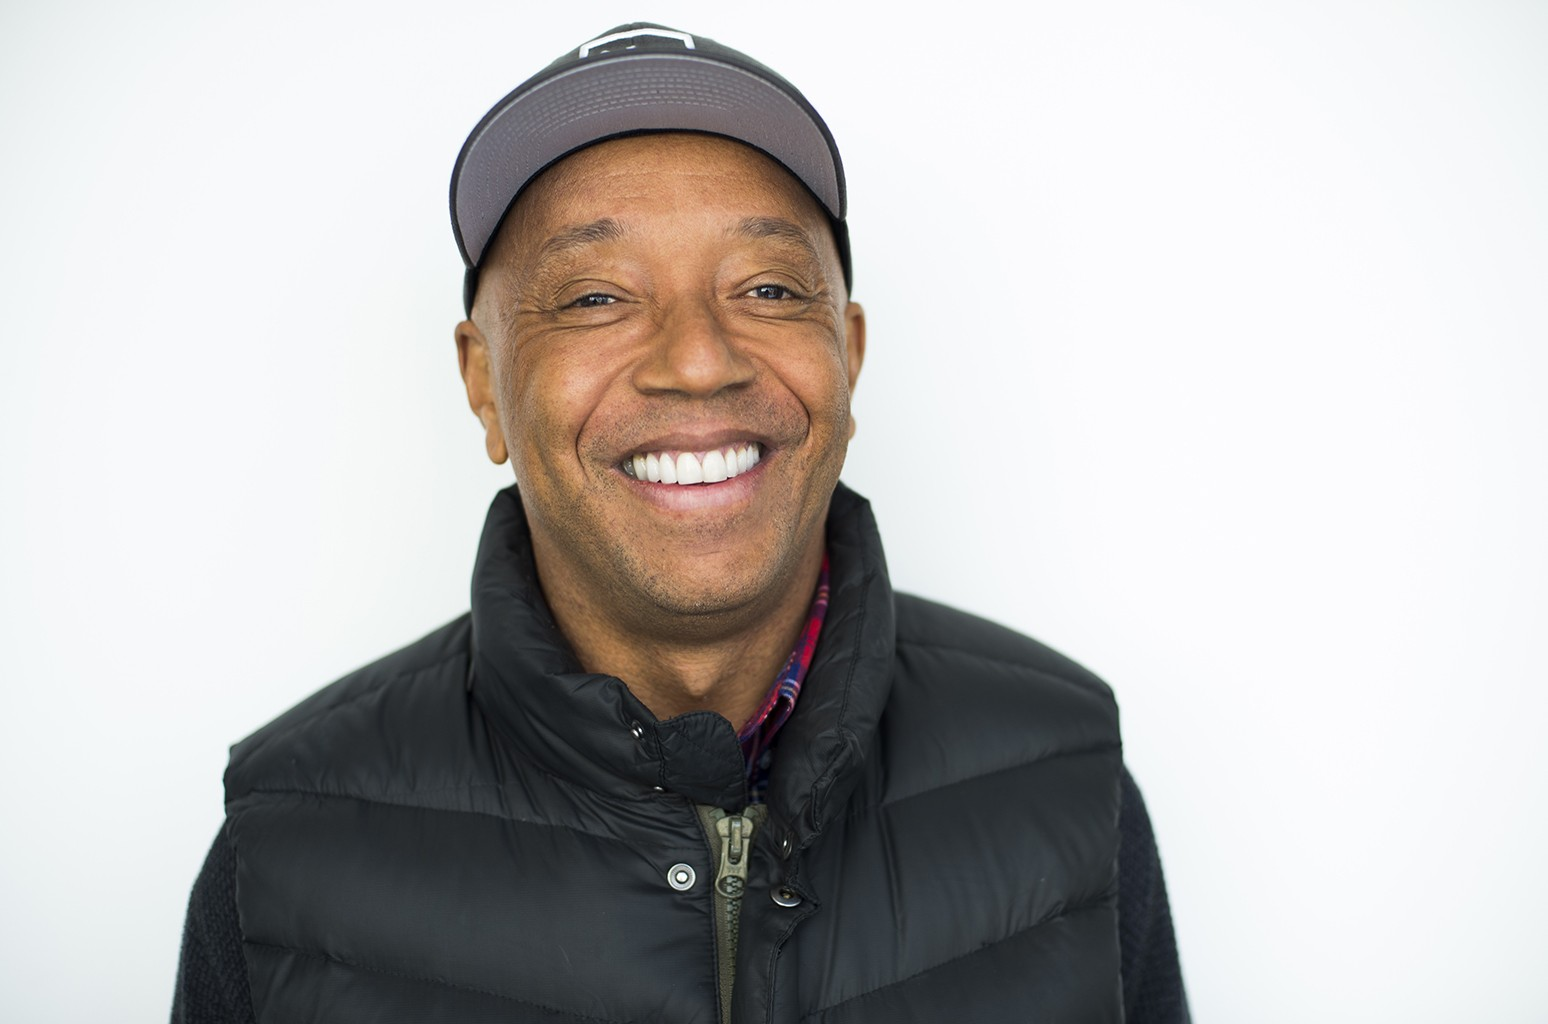 Russell Simmons photographed on Jan. 14, 2016 in New York City.